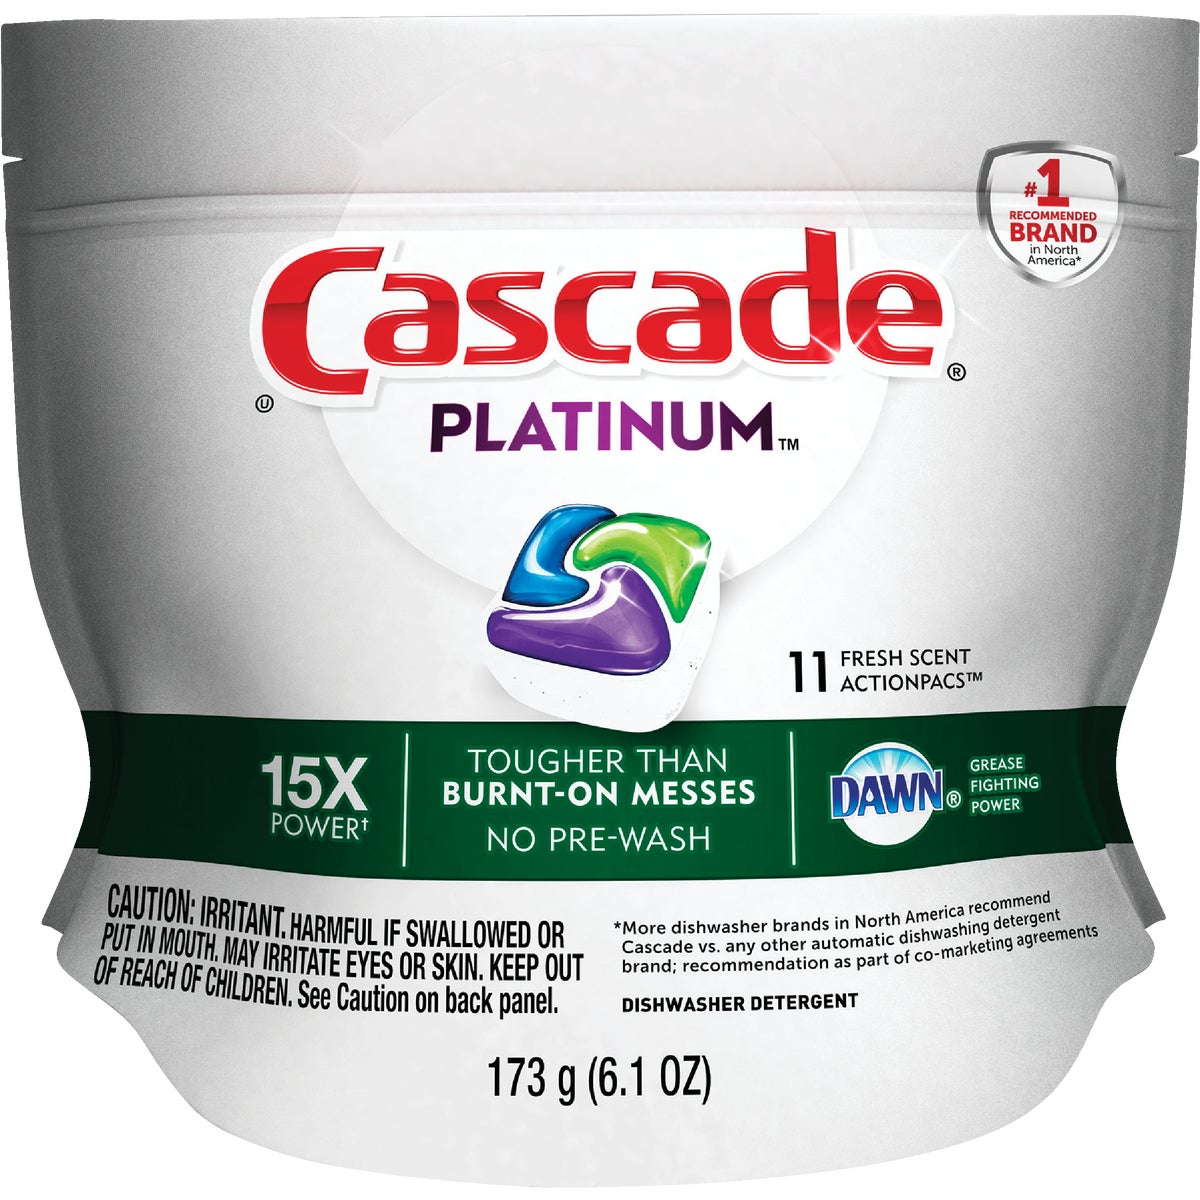 14CT PLATINUM CASCADE - 84462 by Procter & Gamble